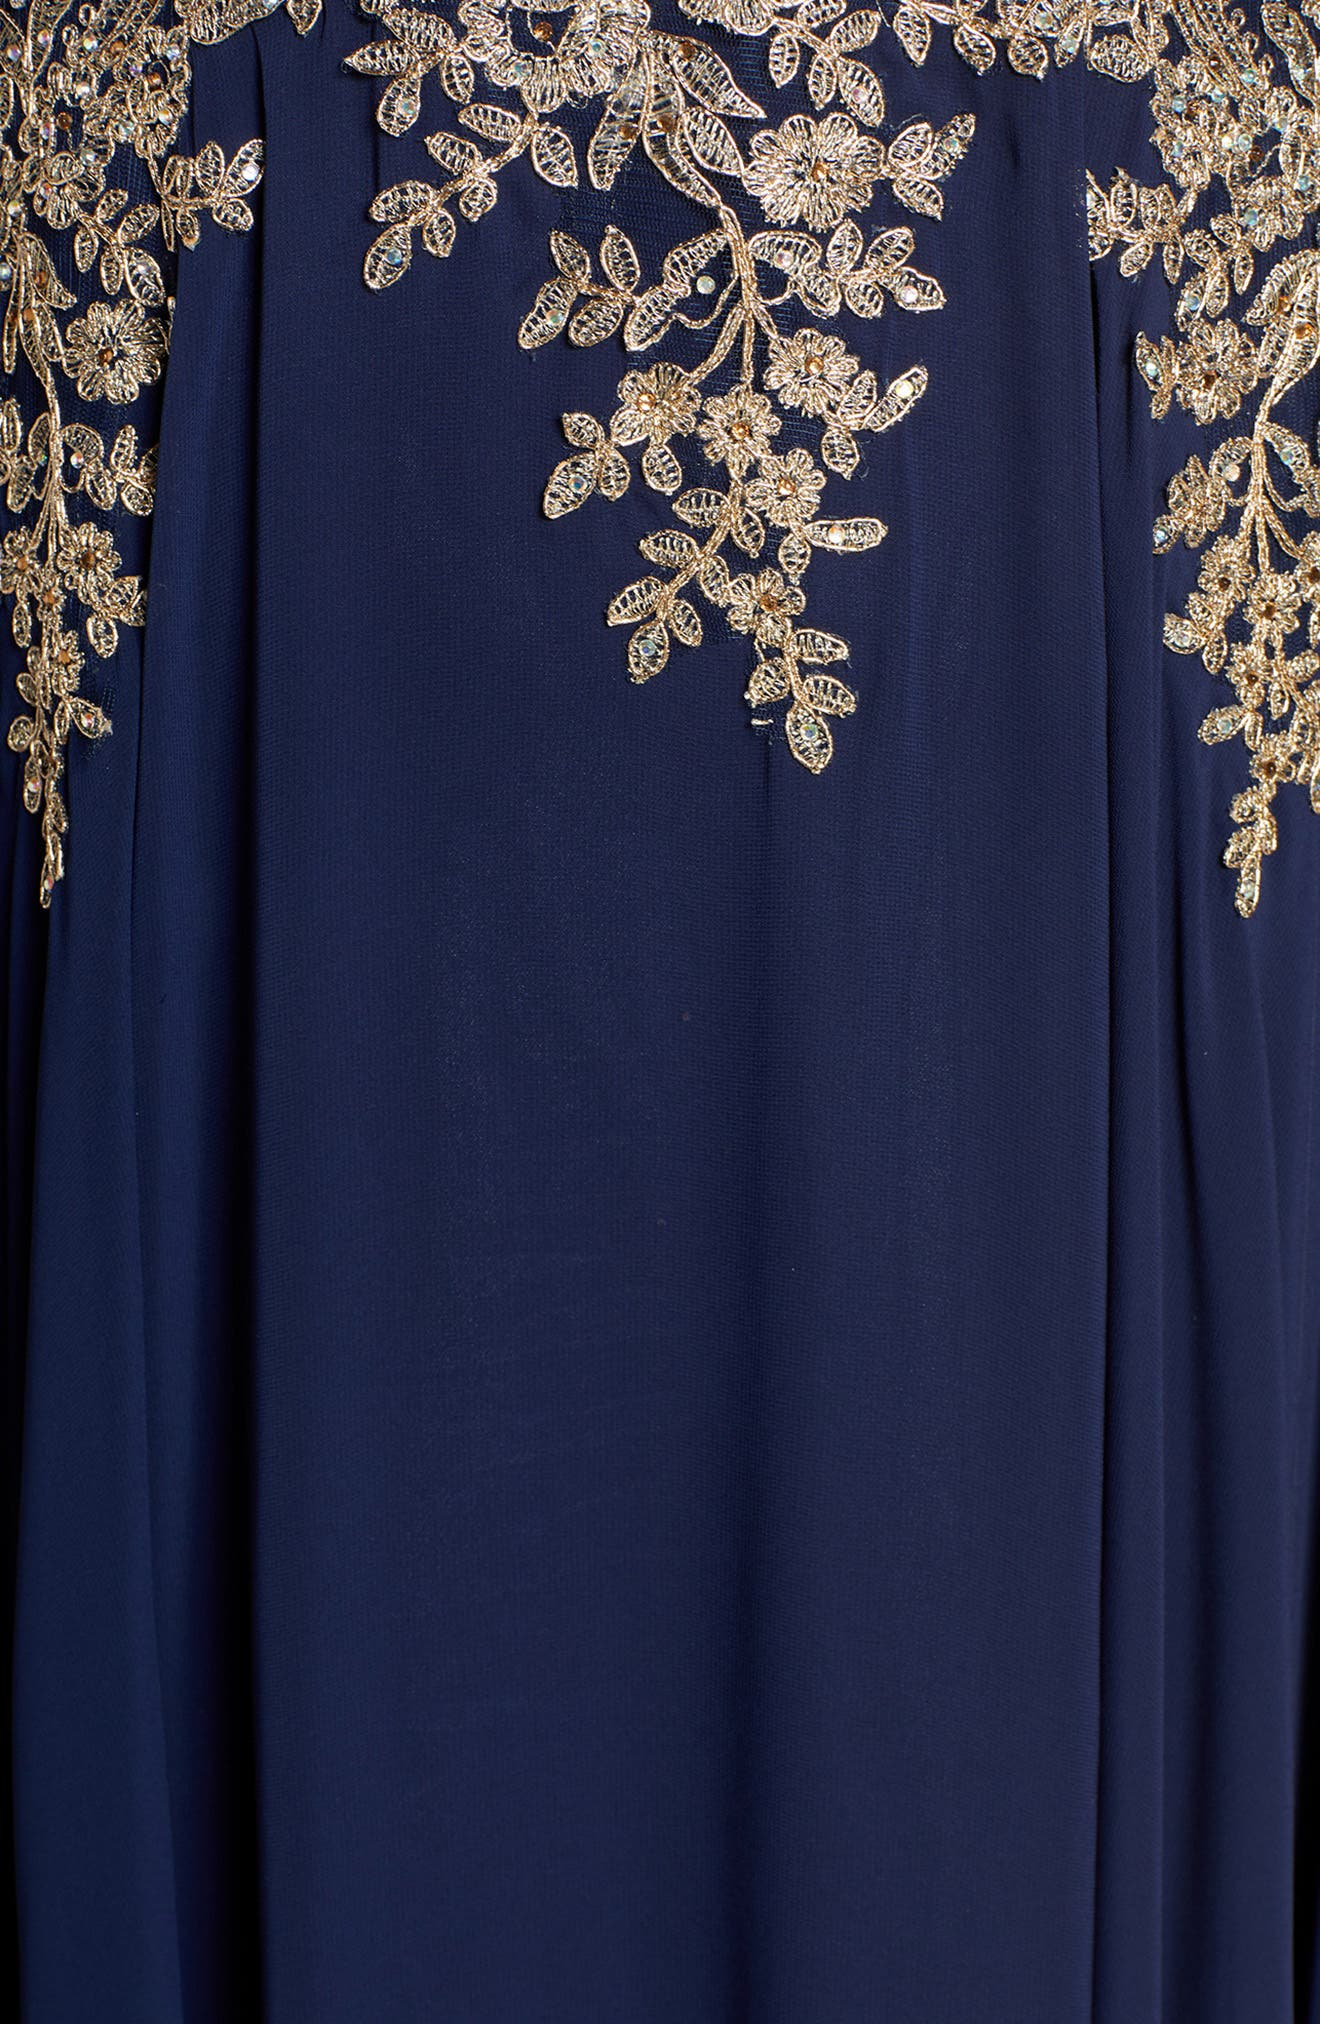 XSCAPE, Metallic Embroidered Gown, Alternate thumbnail 7, color, NAVY/ GOLD